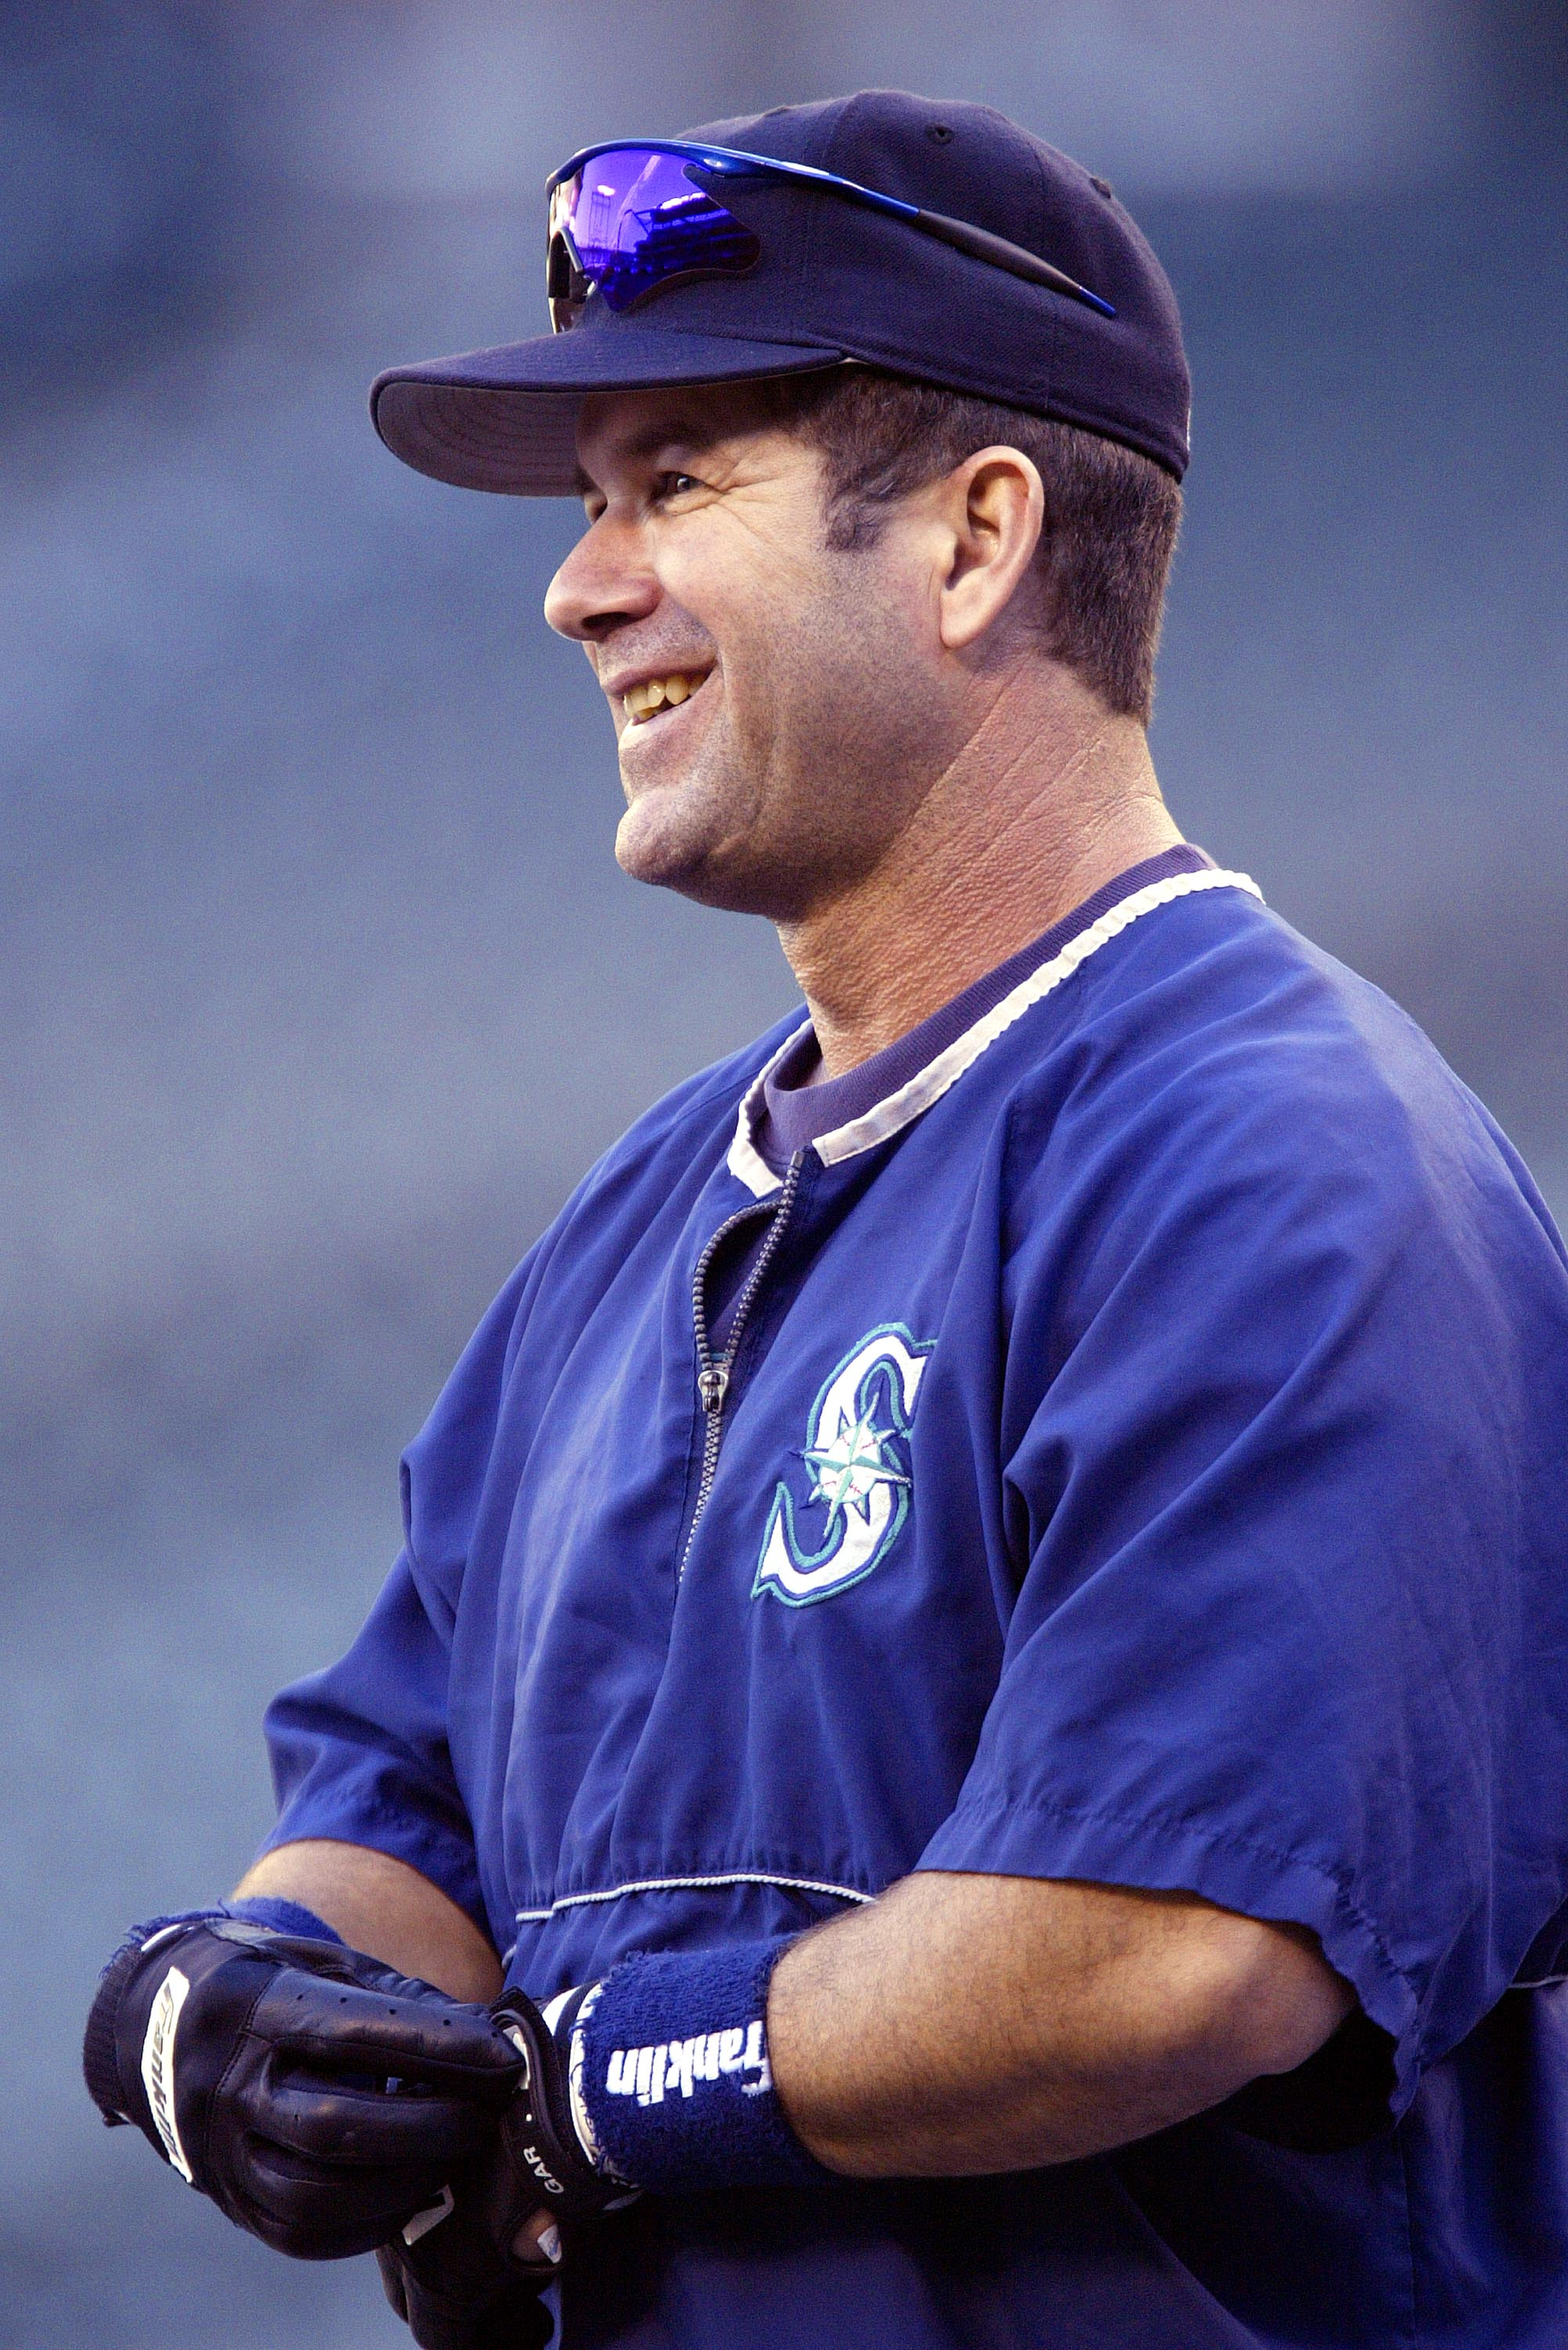 SEATTLE - OCTOBER 1:  Designated hitter Edgar Martinez #11 of the Seattle Mariners smiles during practice for the game against the Texas Rangers on October 1 2004 at Safeco Field in Seattle, Washington. Edgar Martinez plans to retire at the end of the sea